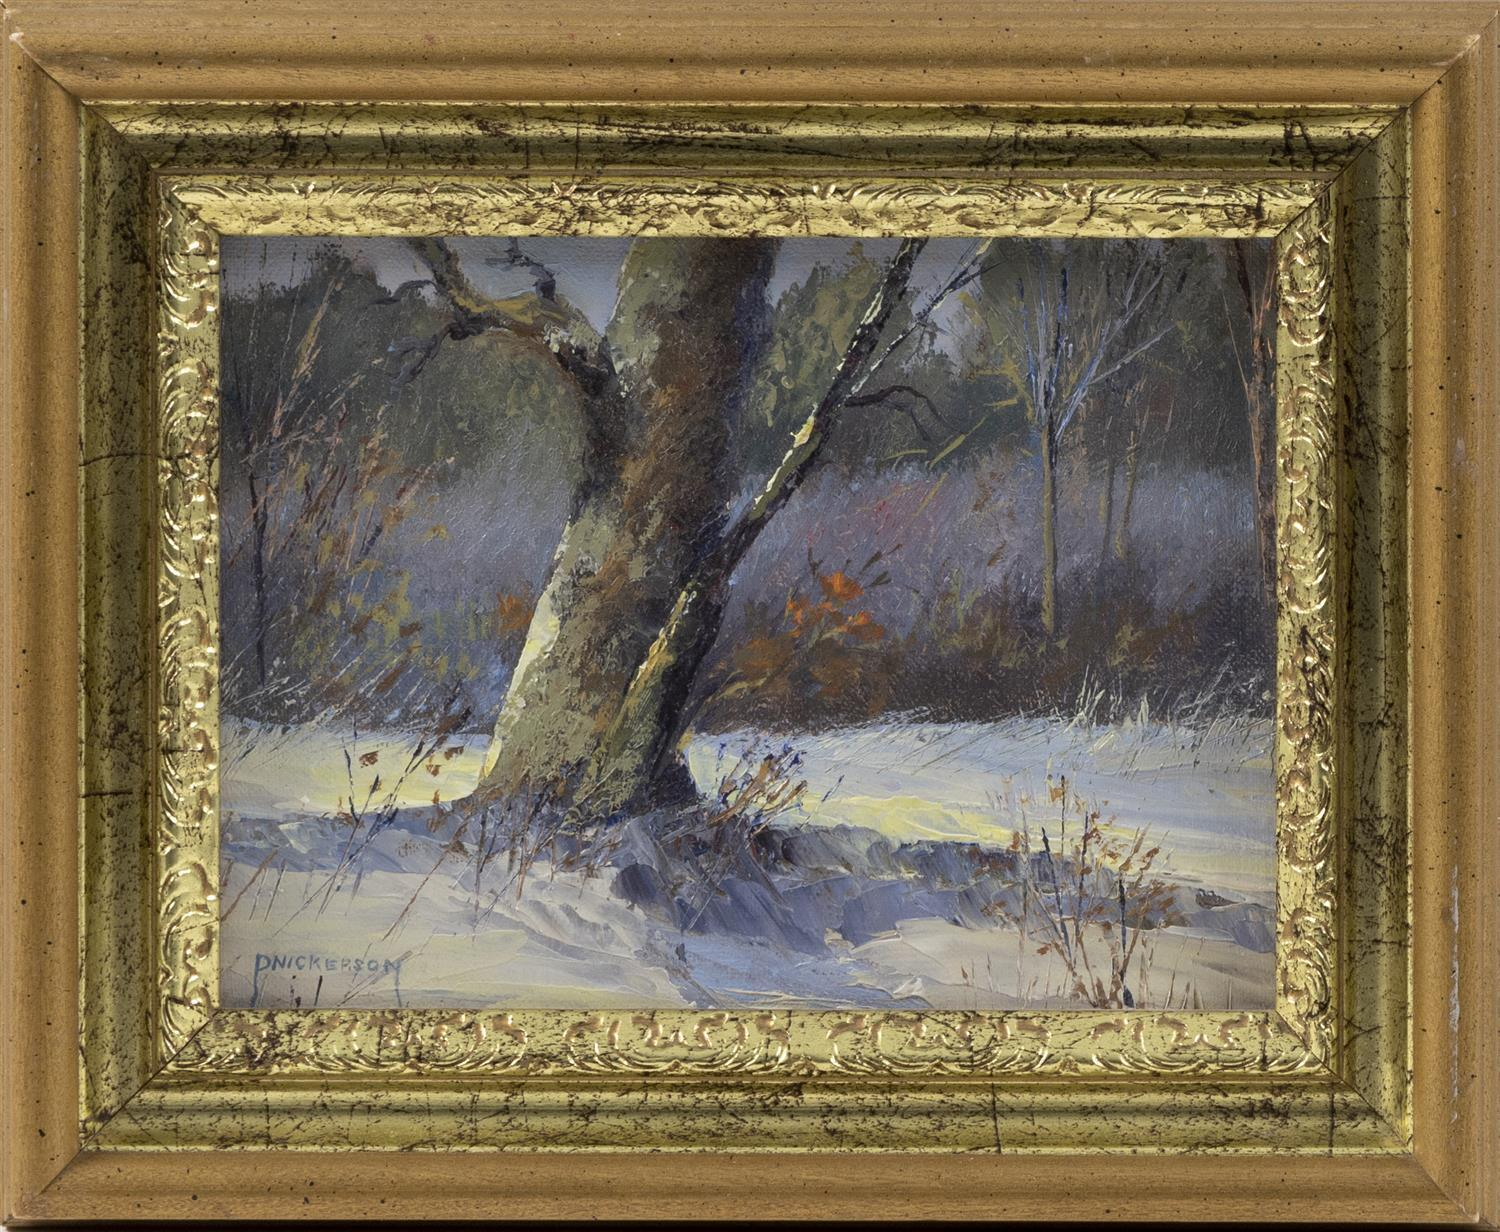 "AMERICAN SCHOOL, Contemporary, A tree in a winter landscape., Oil on board, 6"" x 8"". Framed 9"" x 11""."